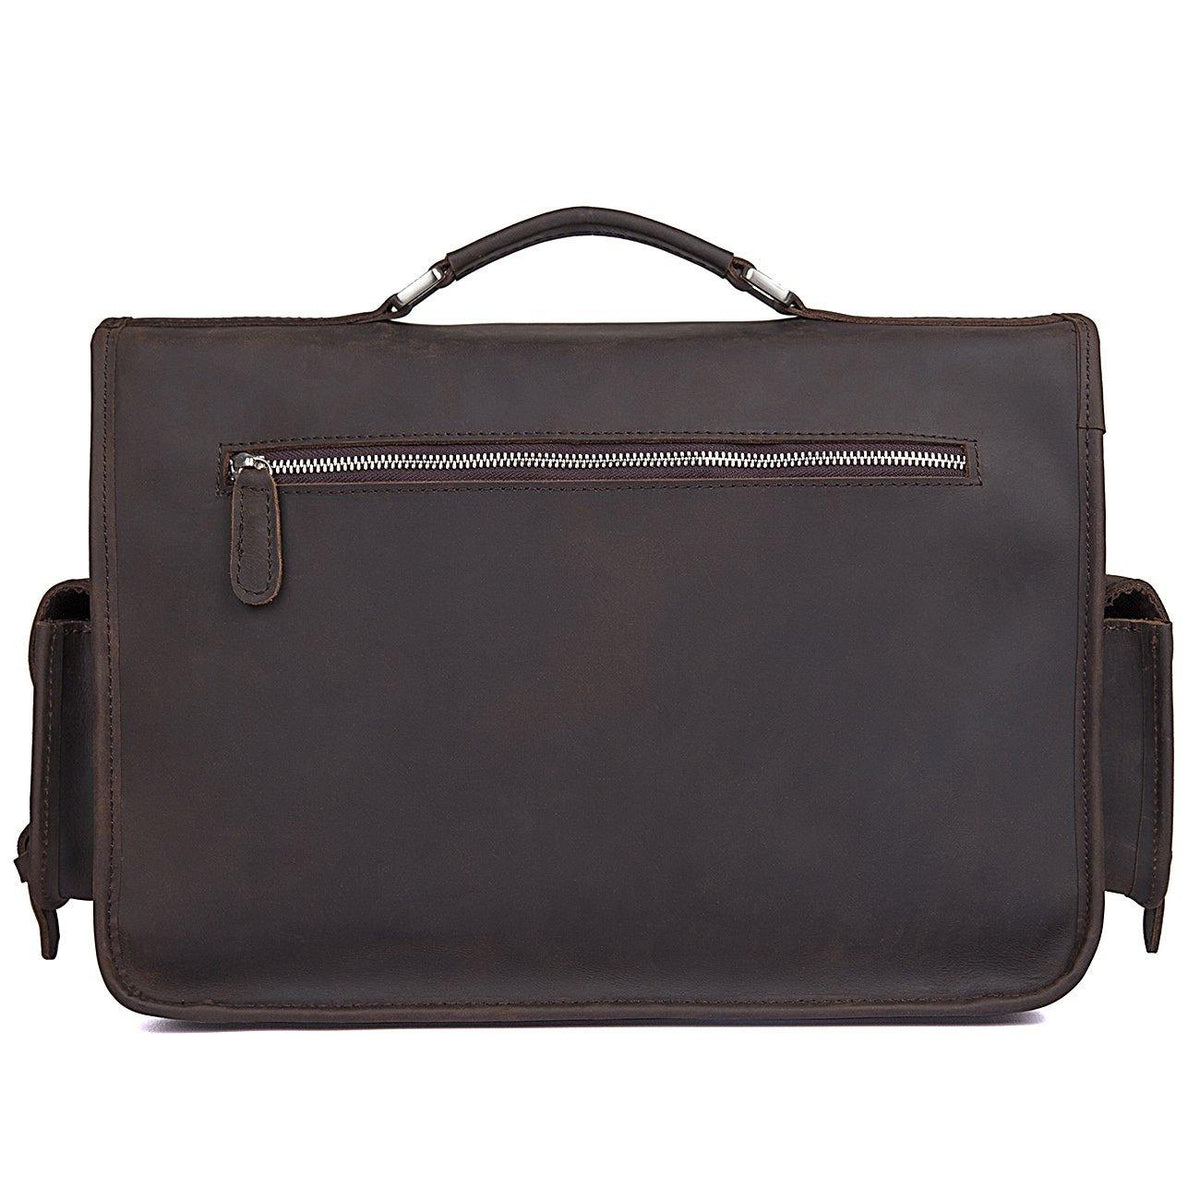 Saddle Leather Briefcase, Rustic, Vintage - Clean Vintage